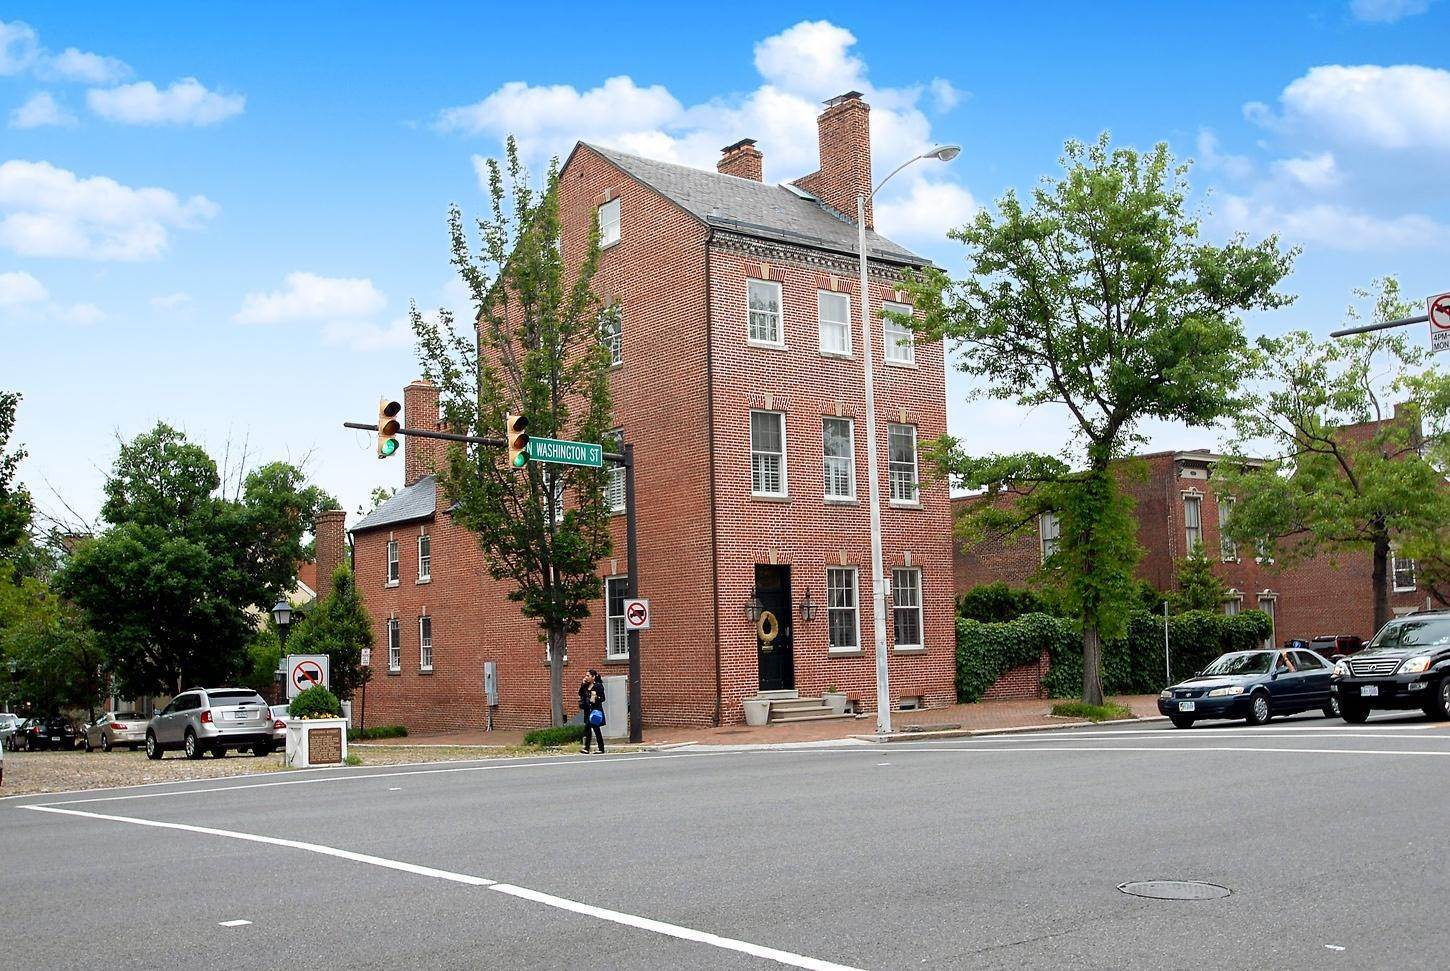 Property for Sale at Old Town, Alexandria, Virginia, 22314 United States